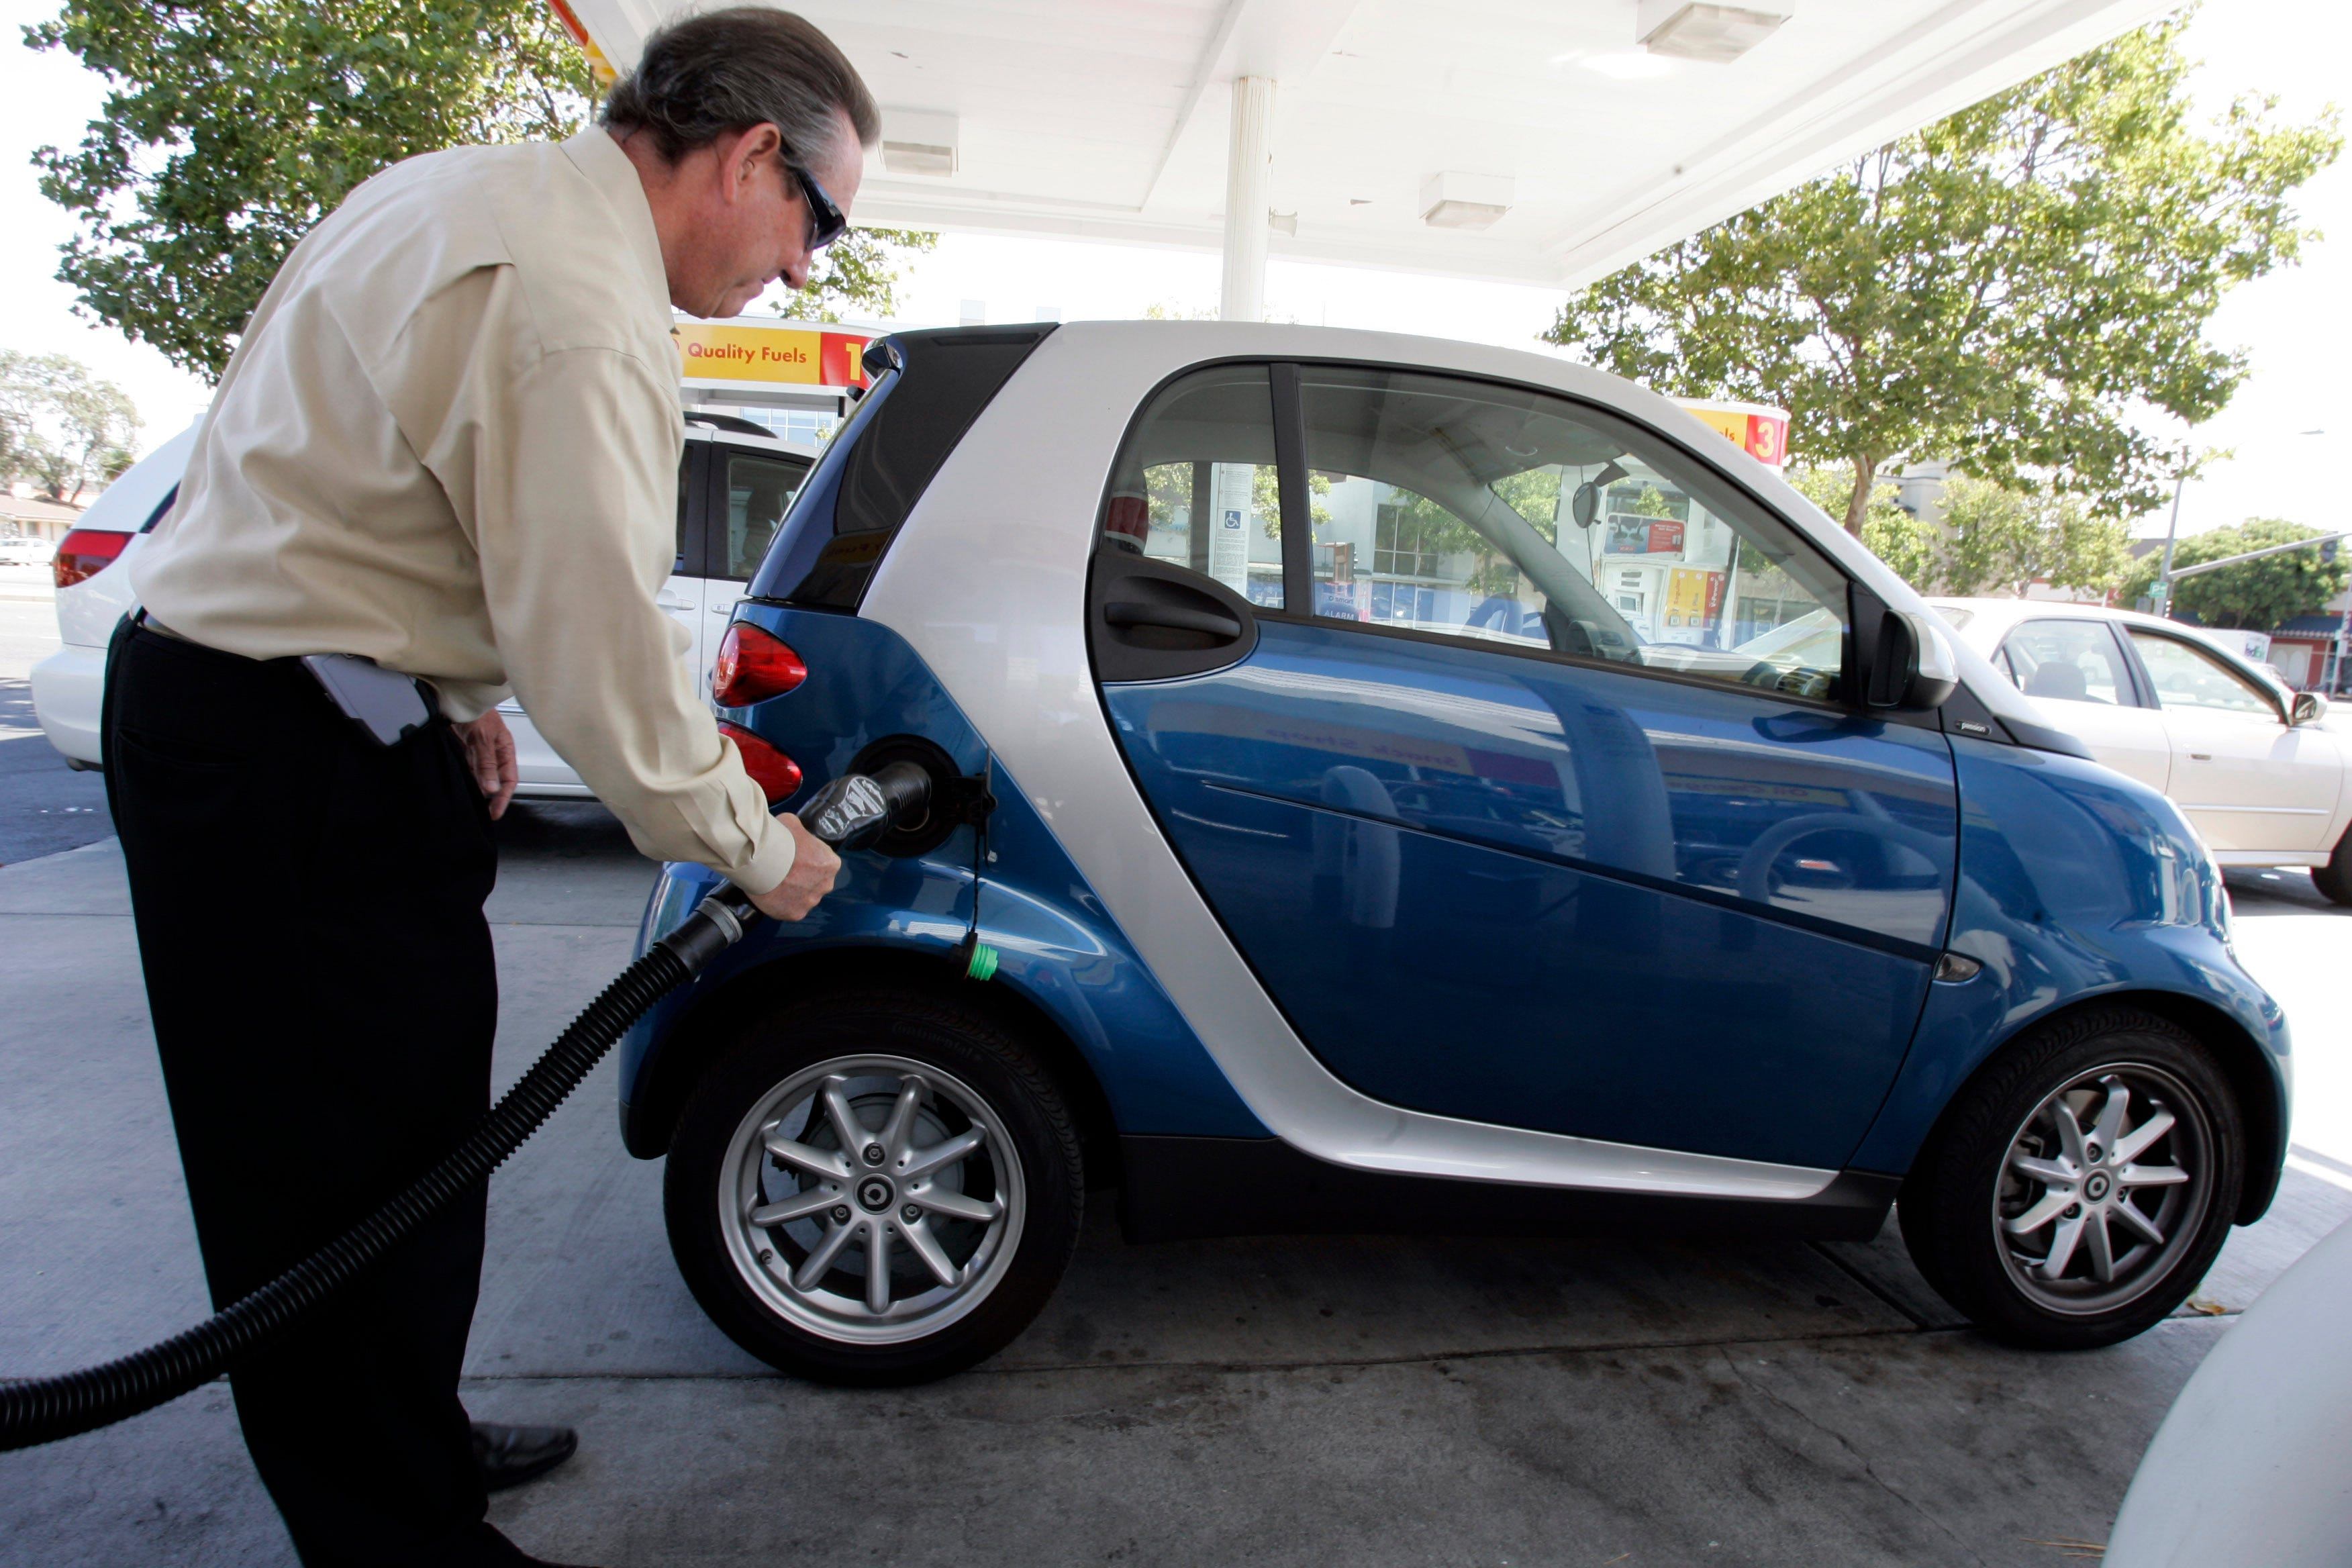 find special offers and deals on new smart cars | smart USA